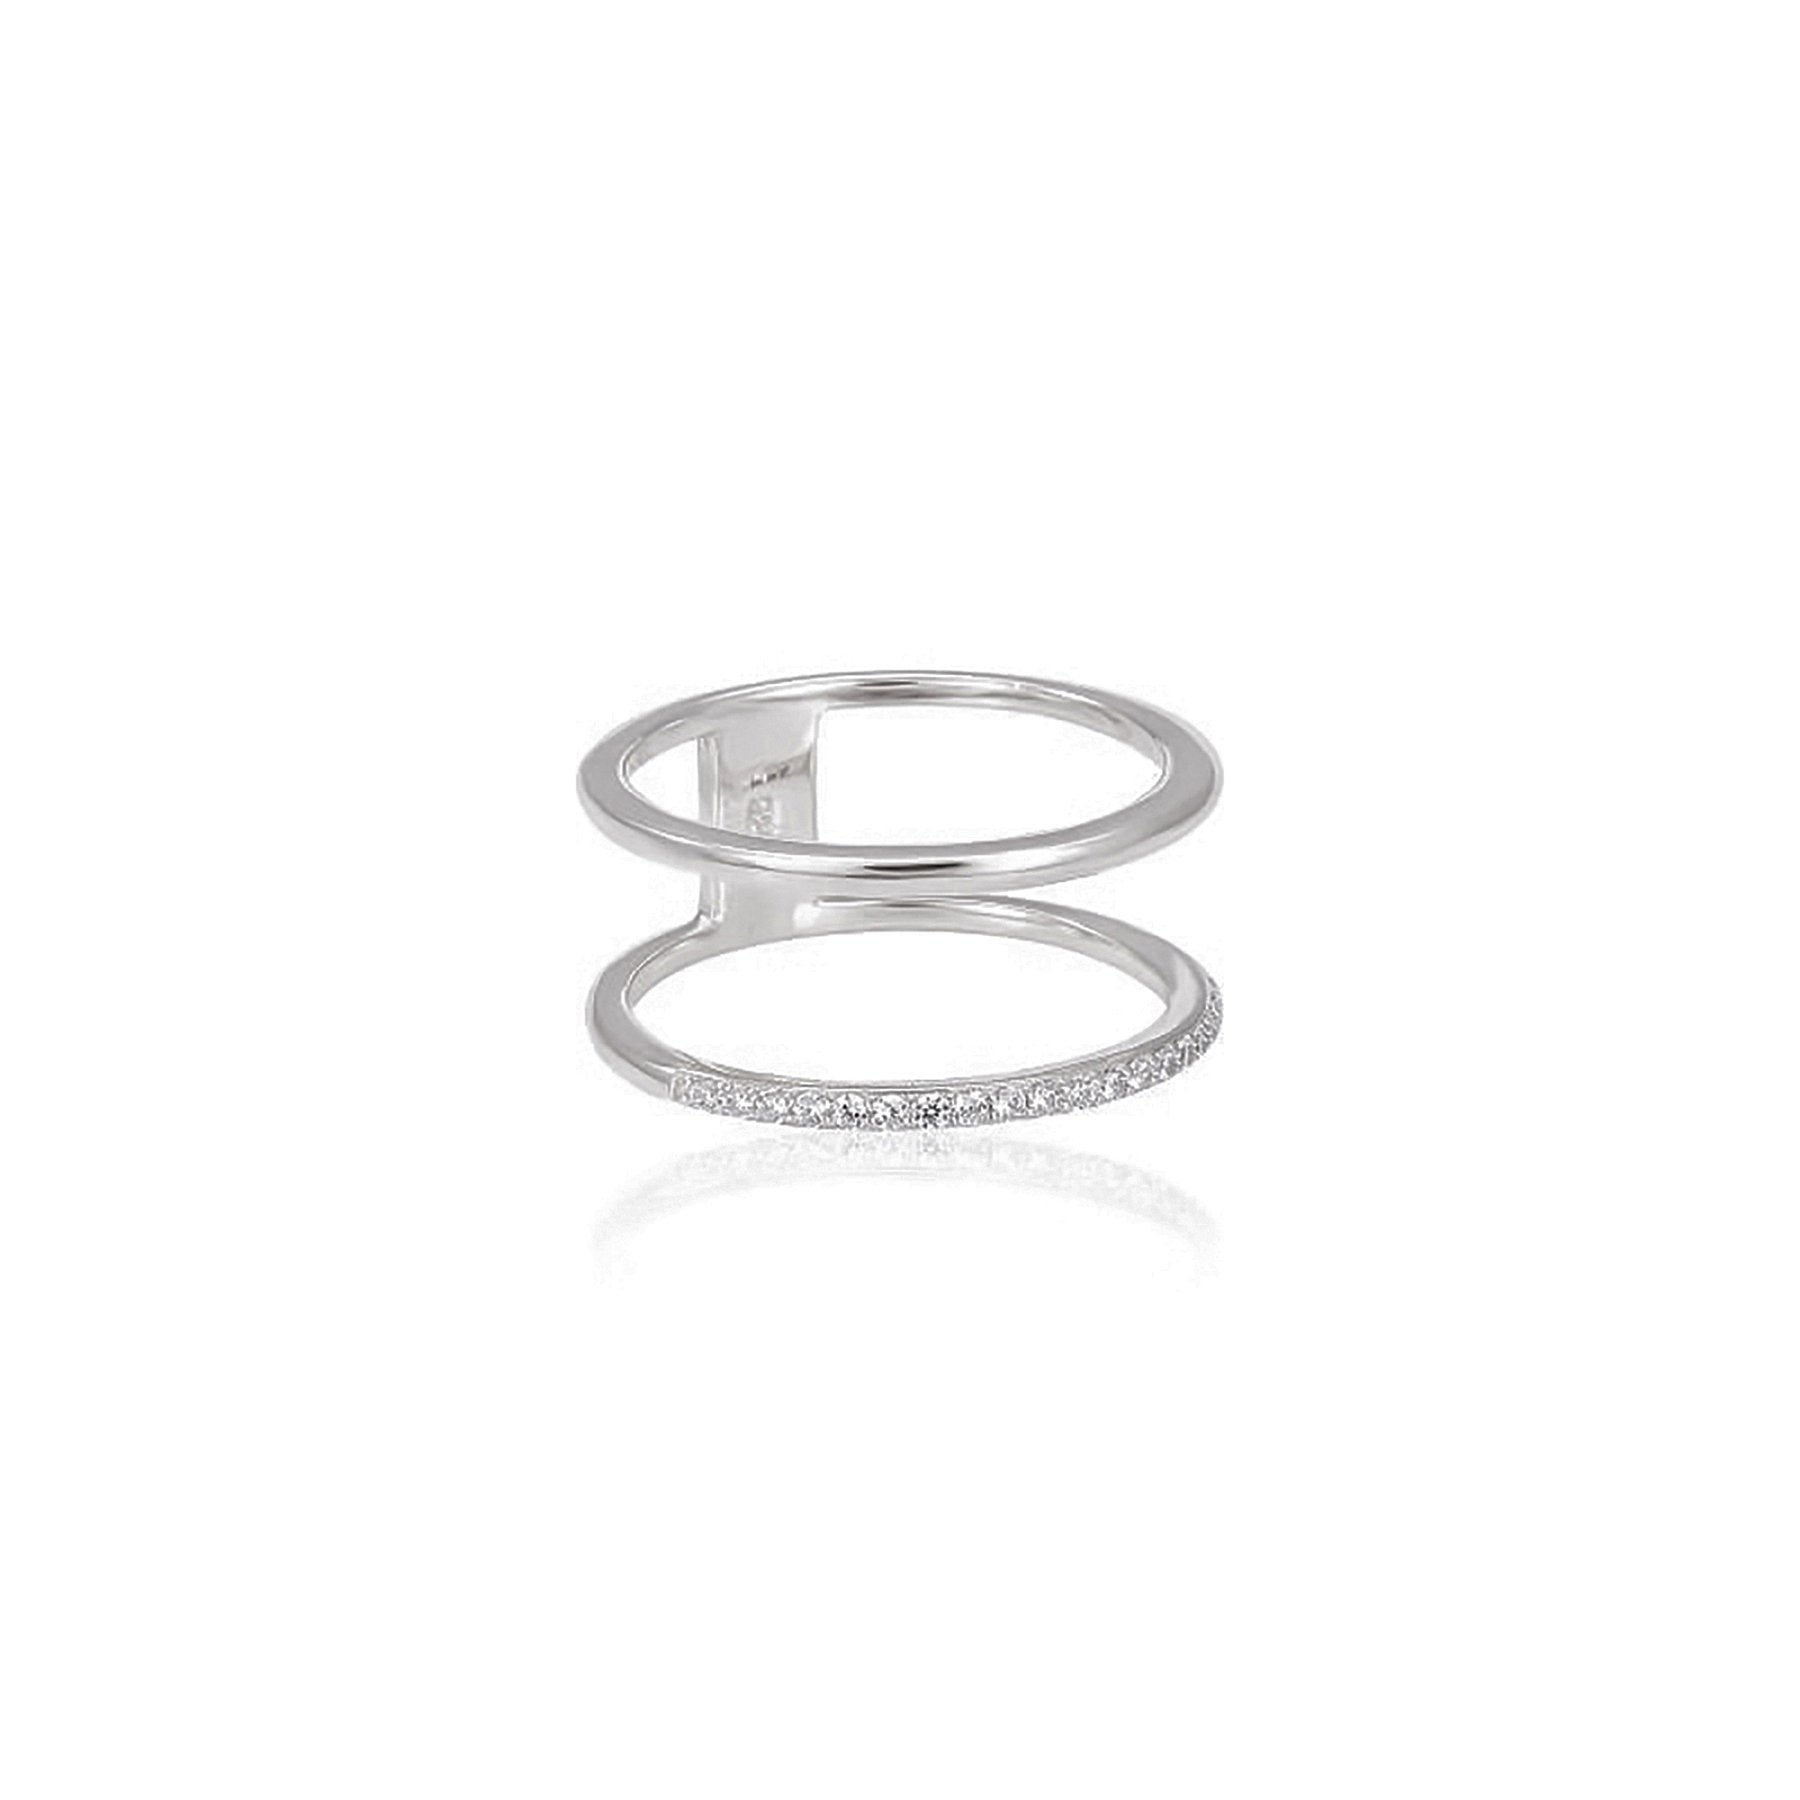 BLANK STRIPE AND INSET STRIPE STERLING SILVER 925